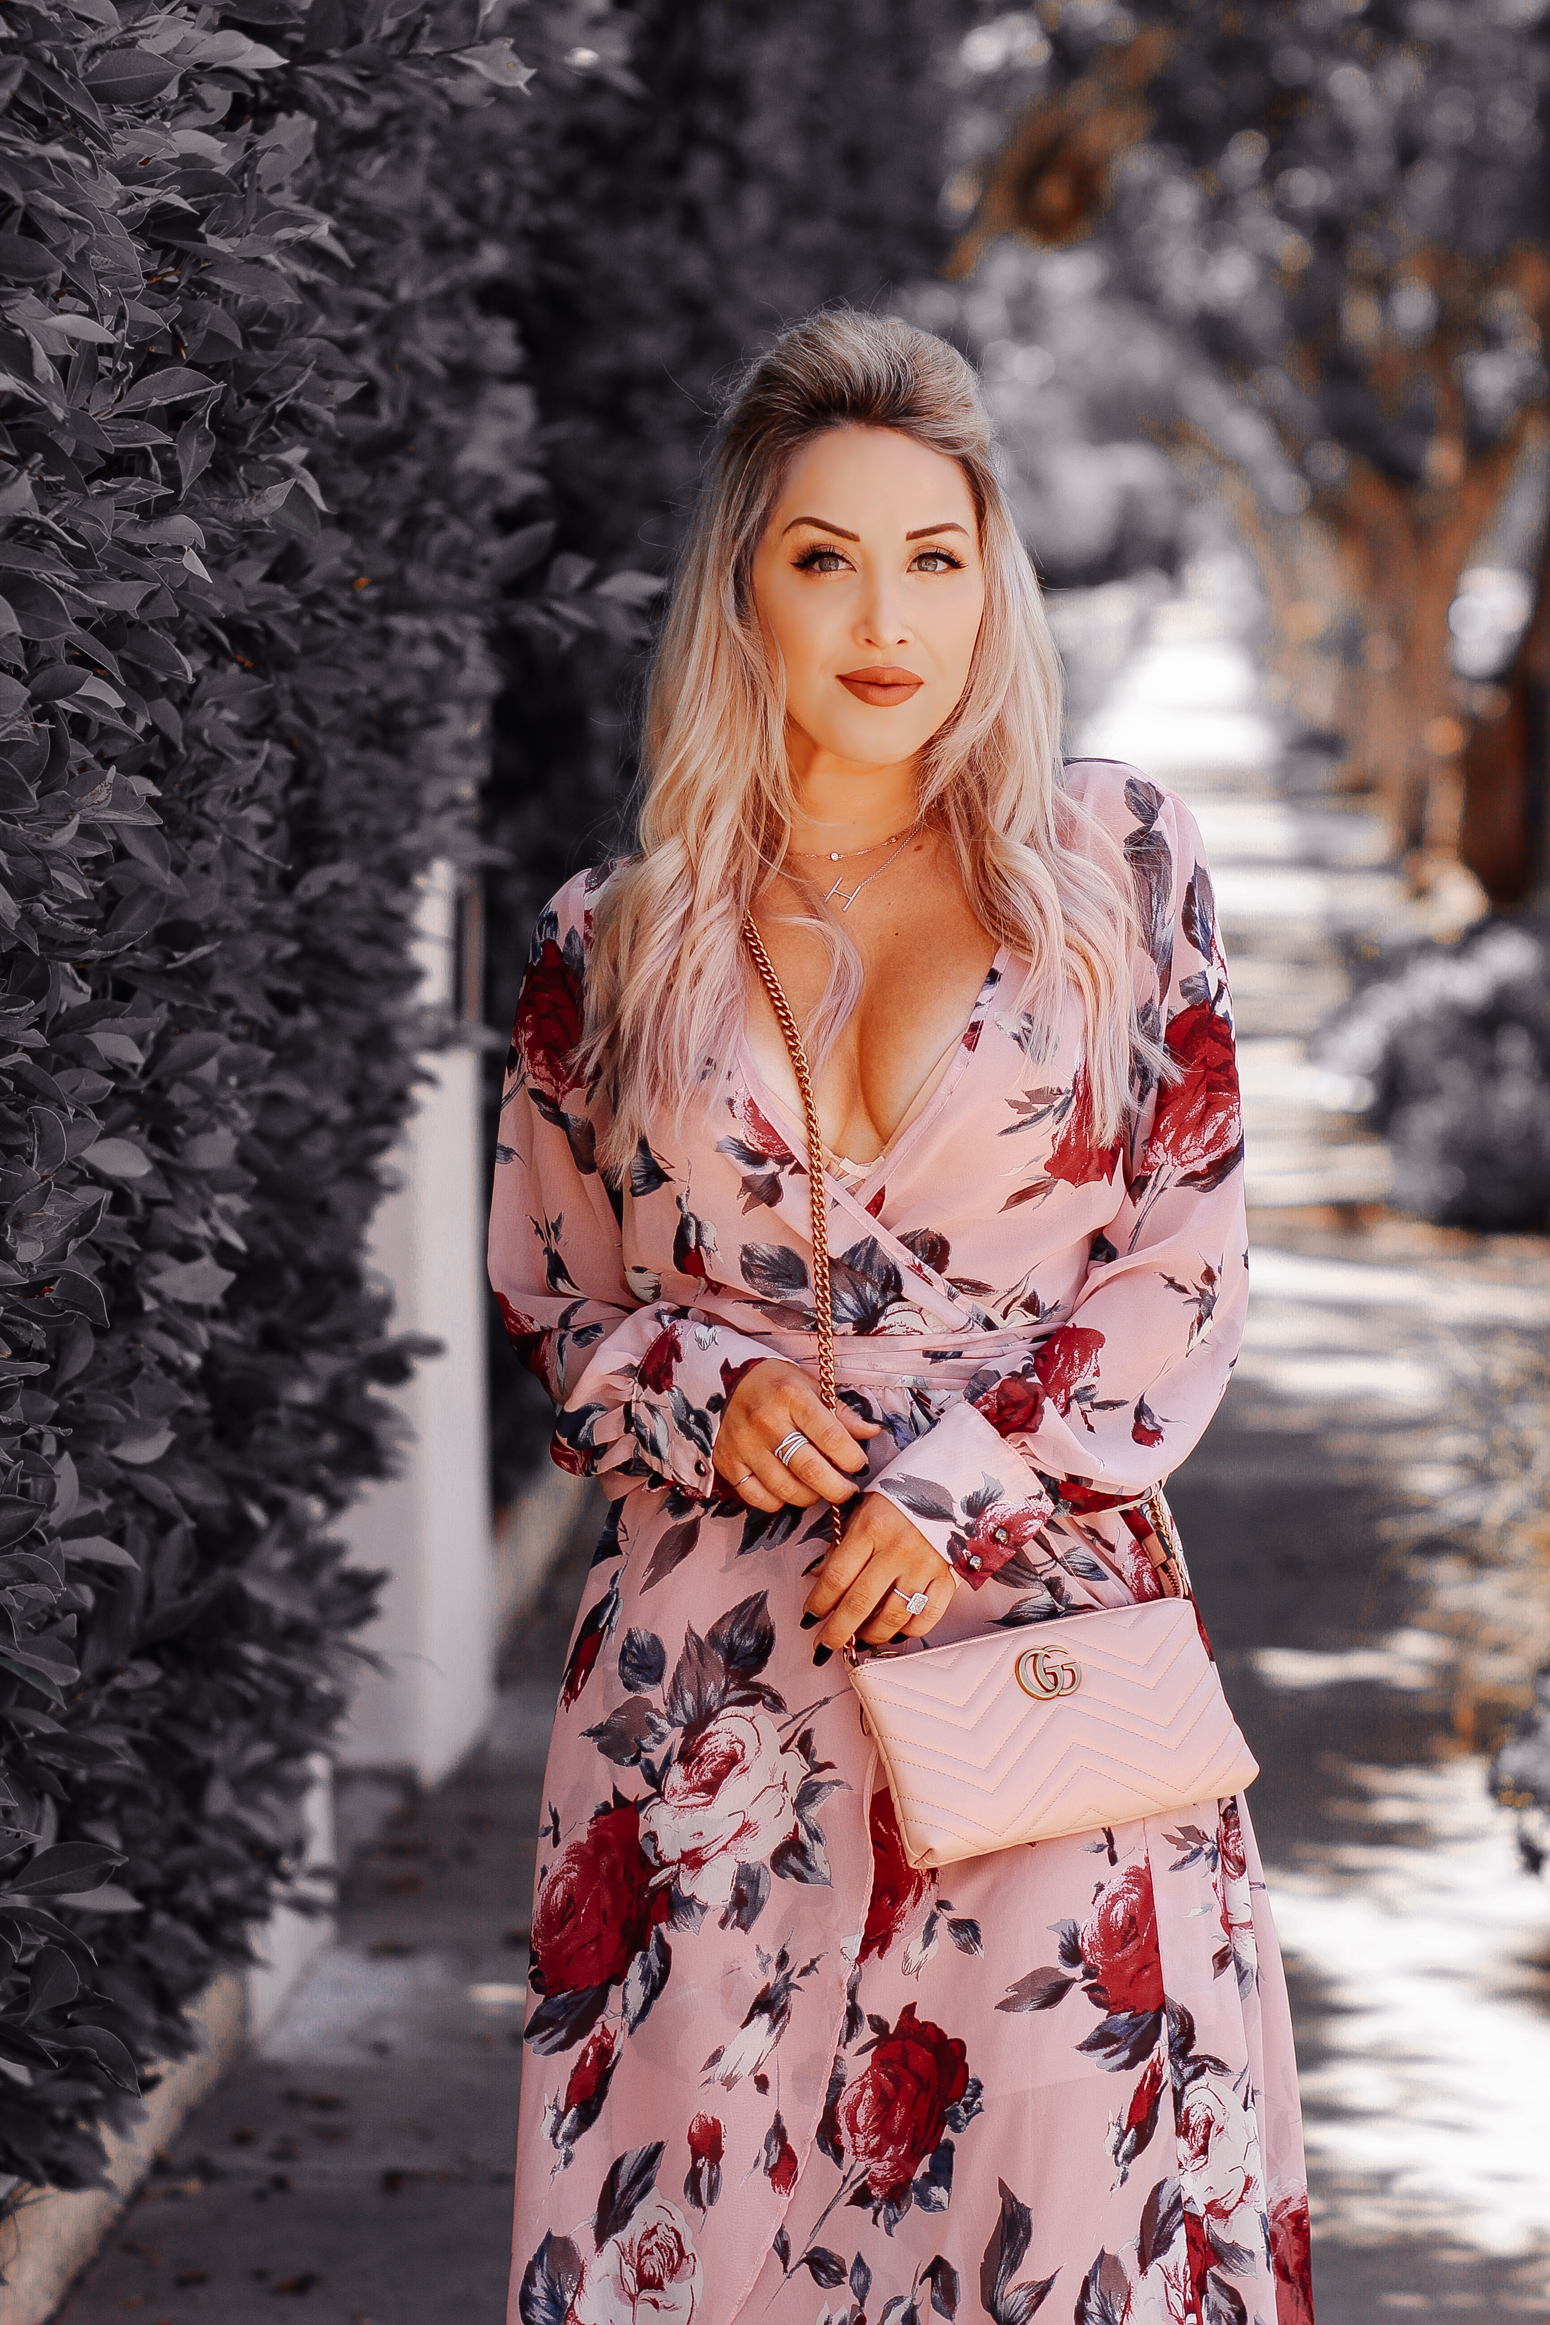 Blondie in the City | Pink & Rose Chiffon Dress | Pink Gucci Bag